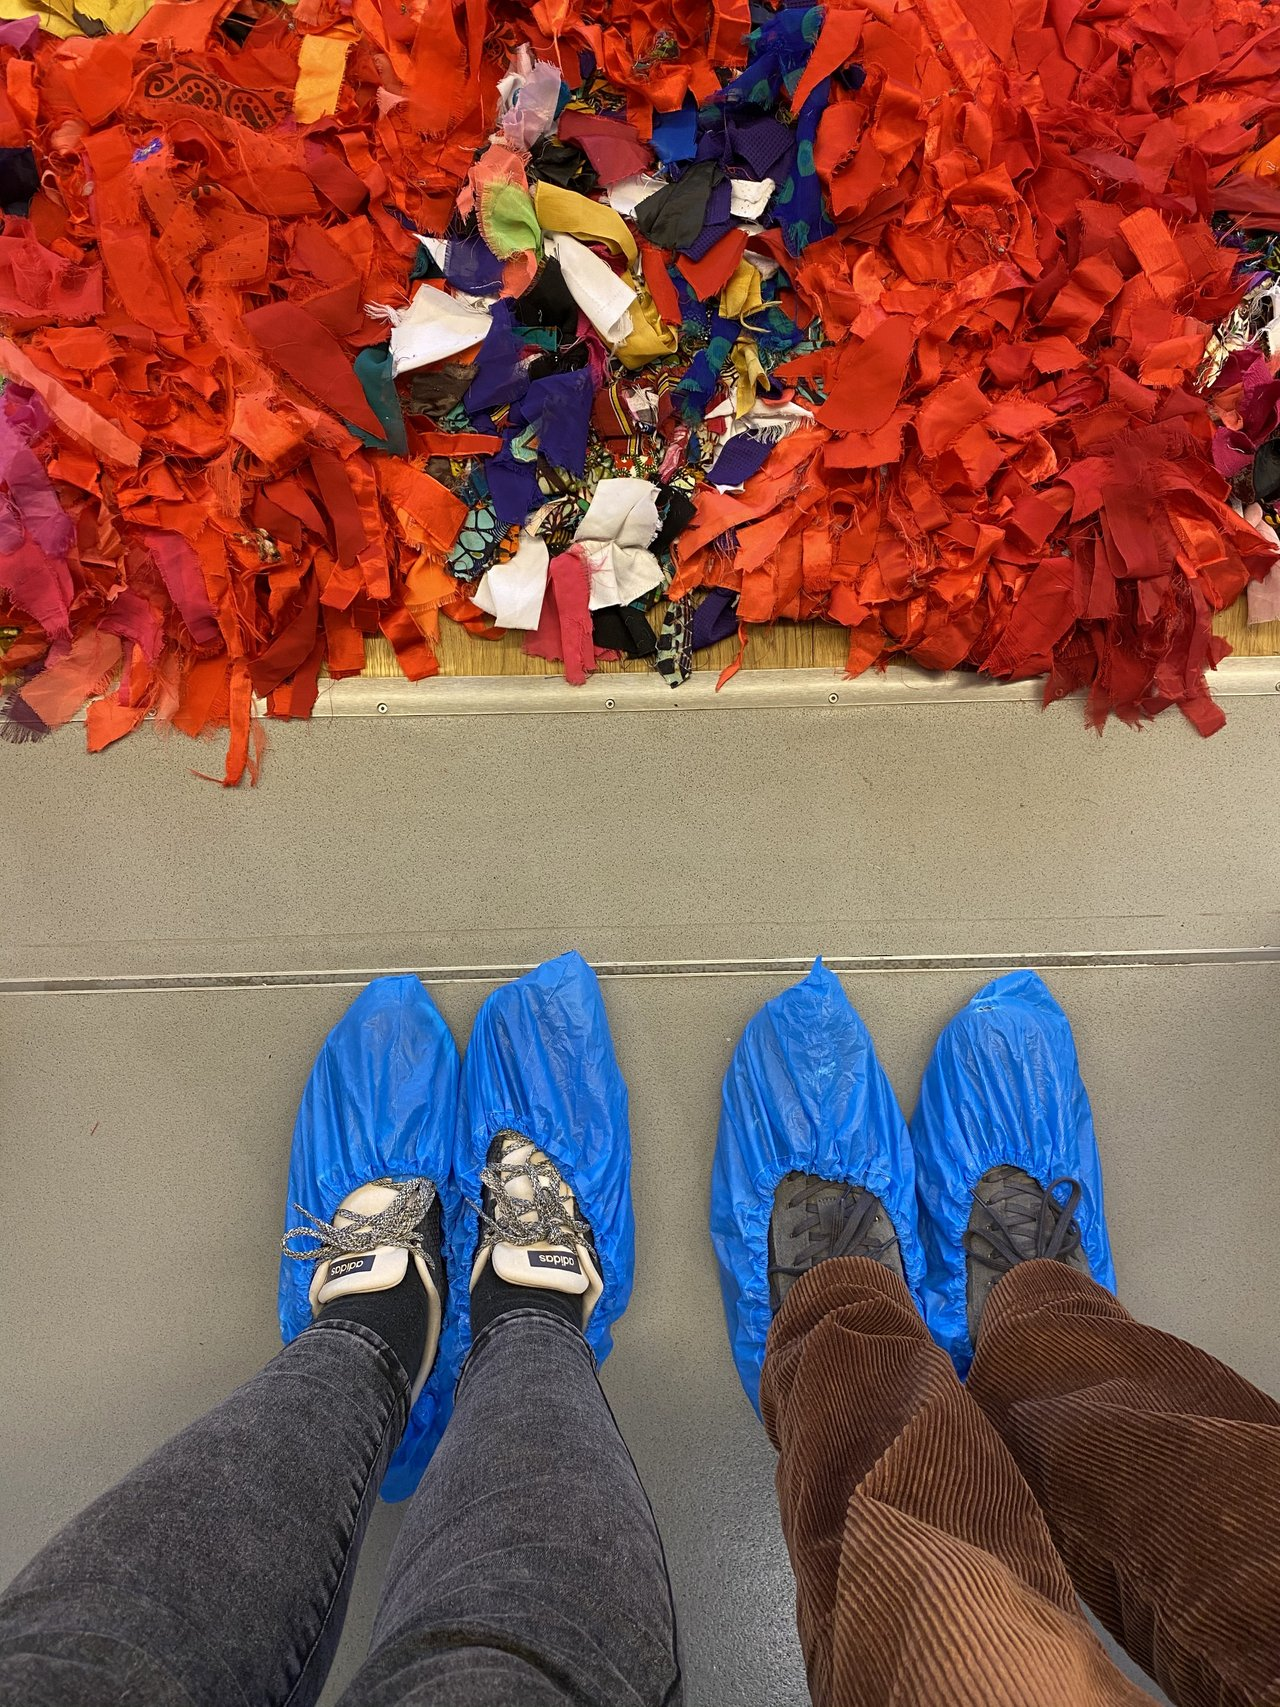 our feet clad in protective covers in front of a red carpet